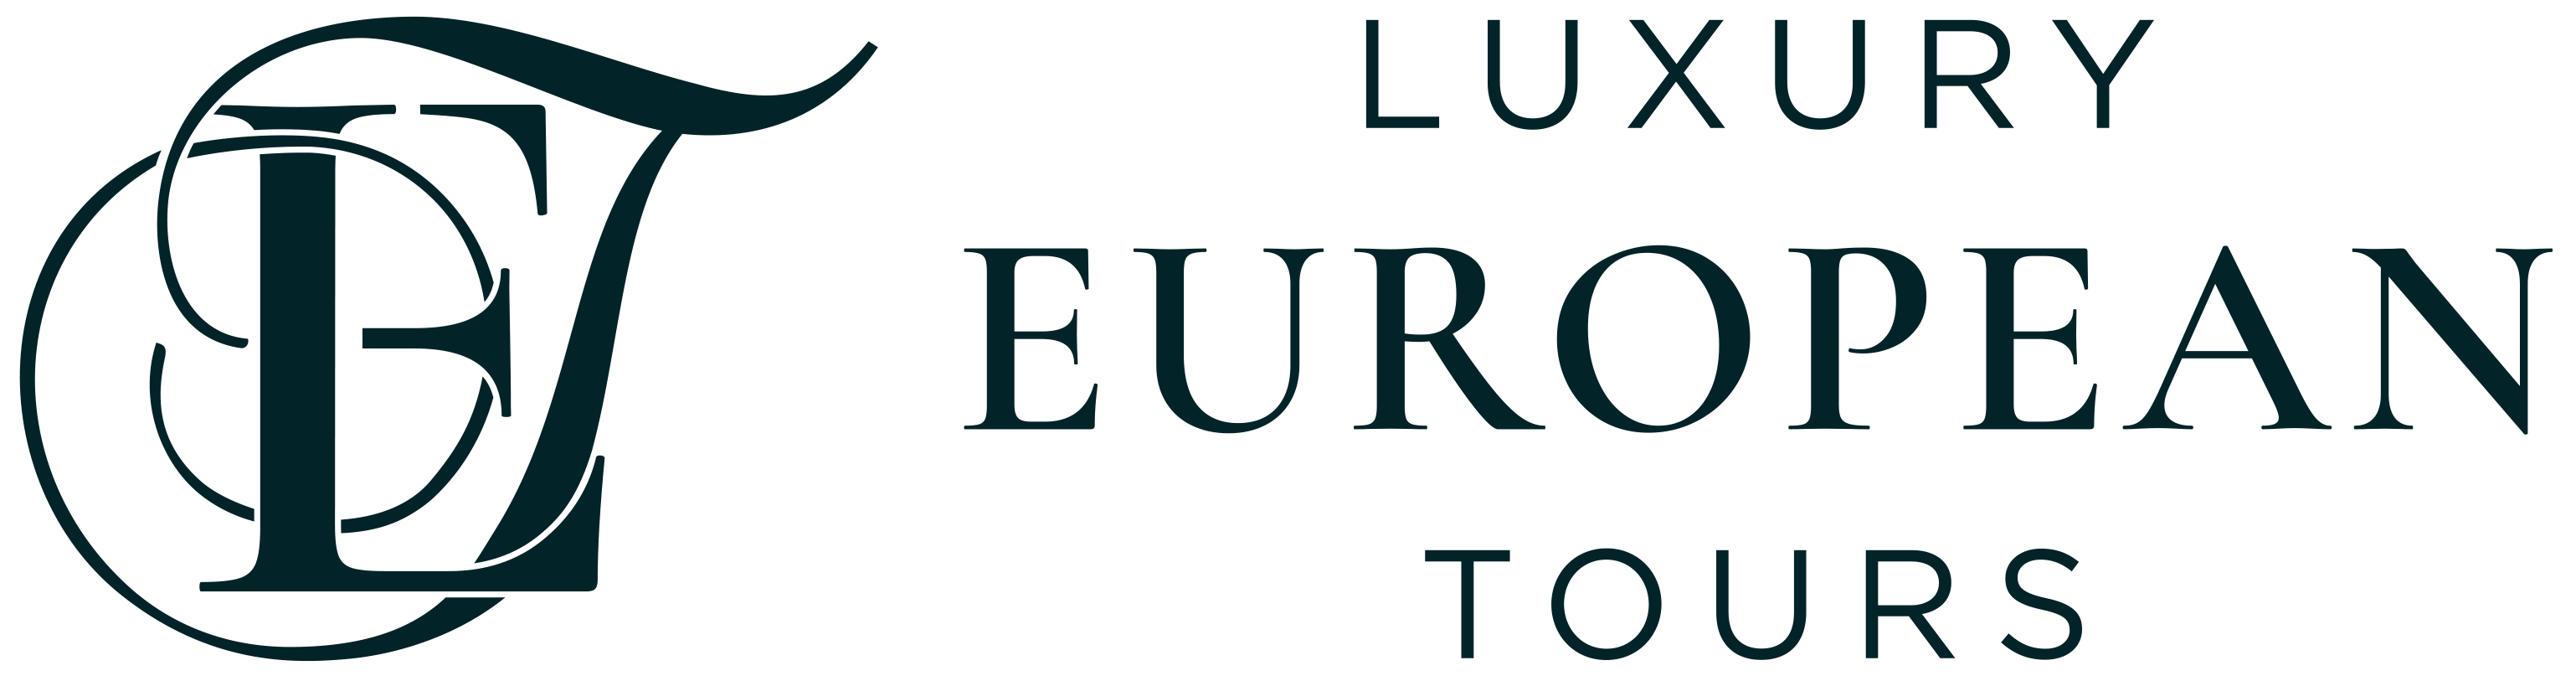 Luxury European Tours